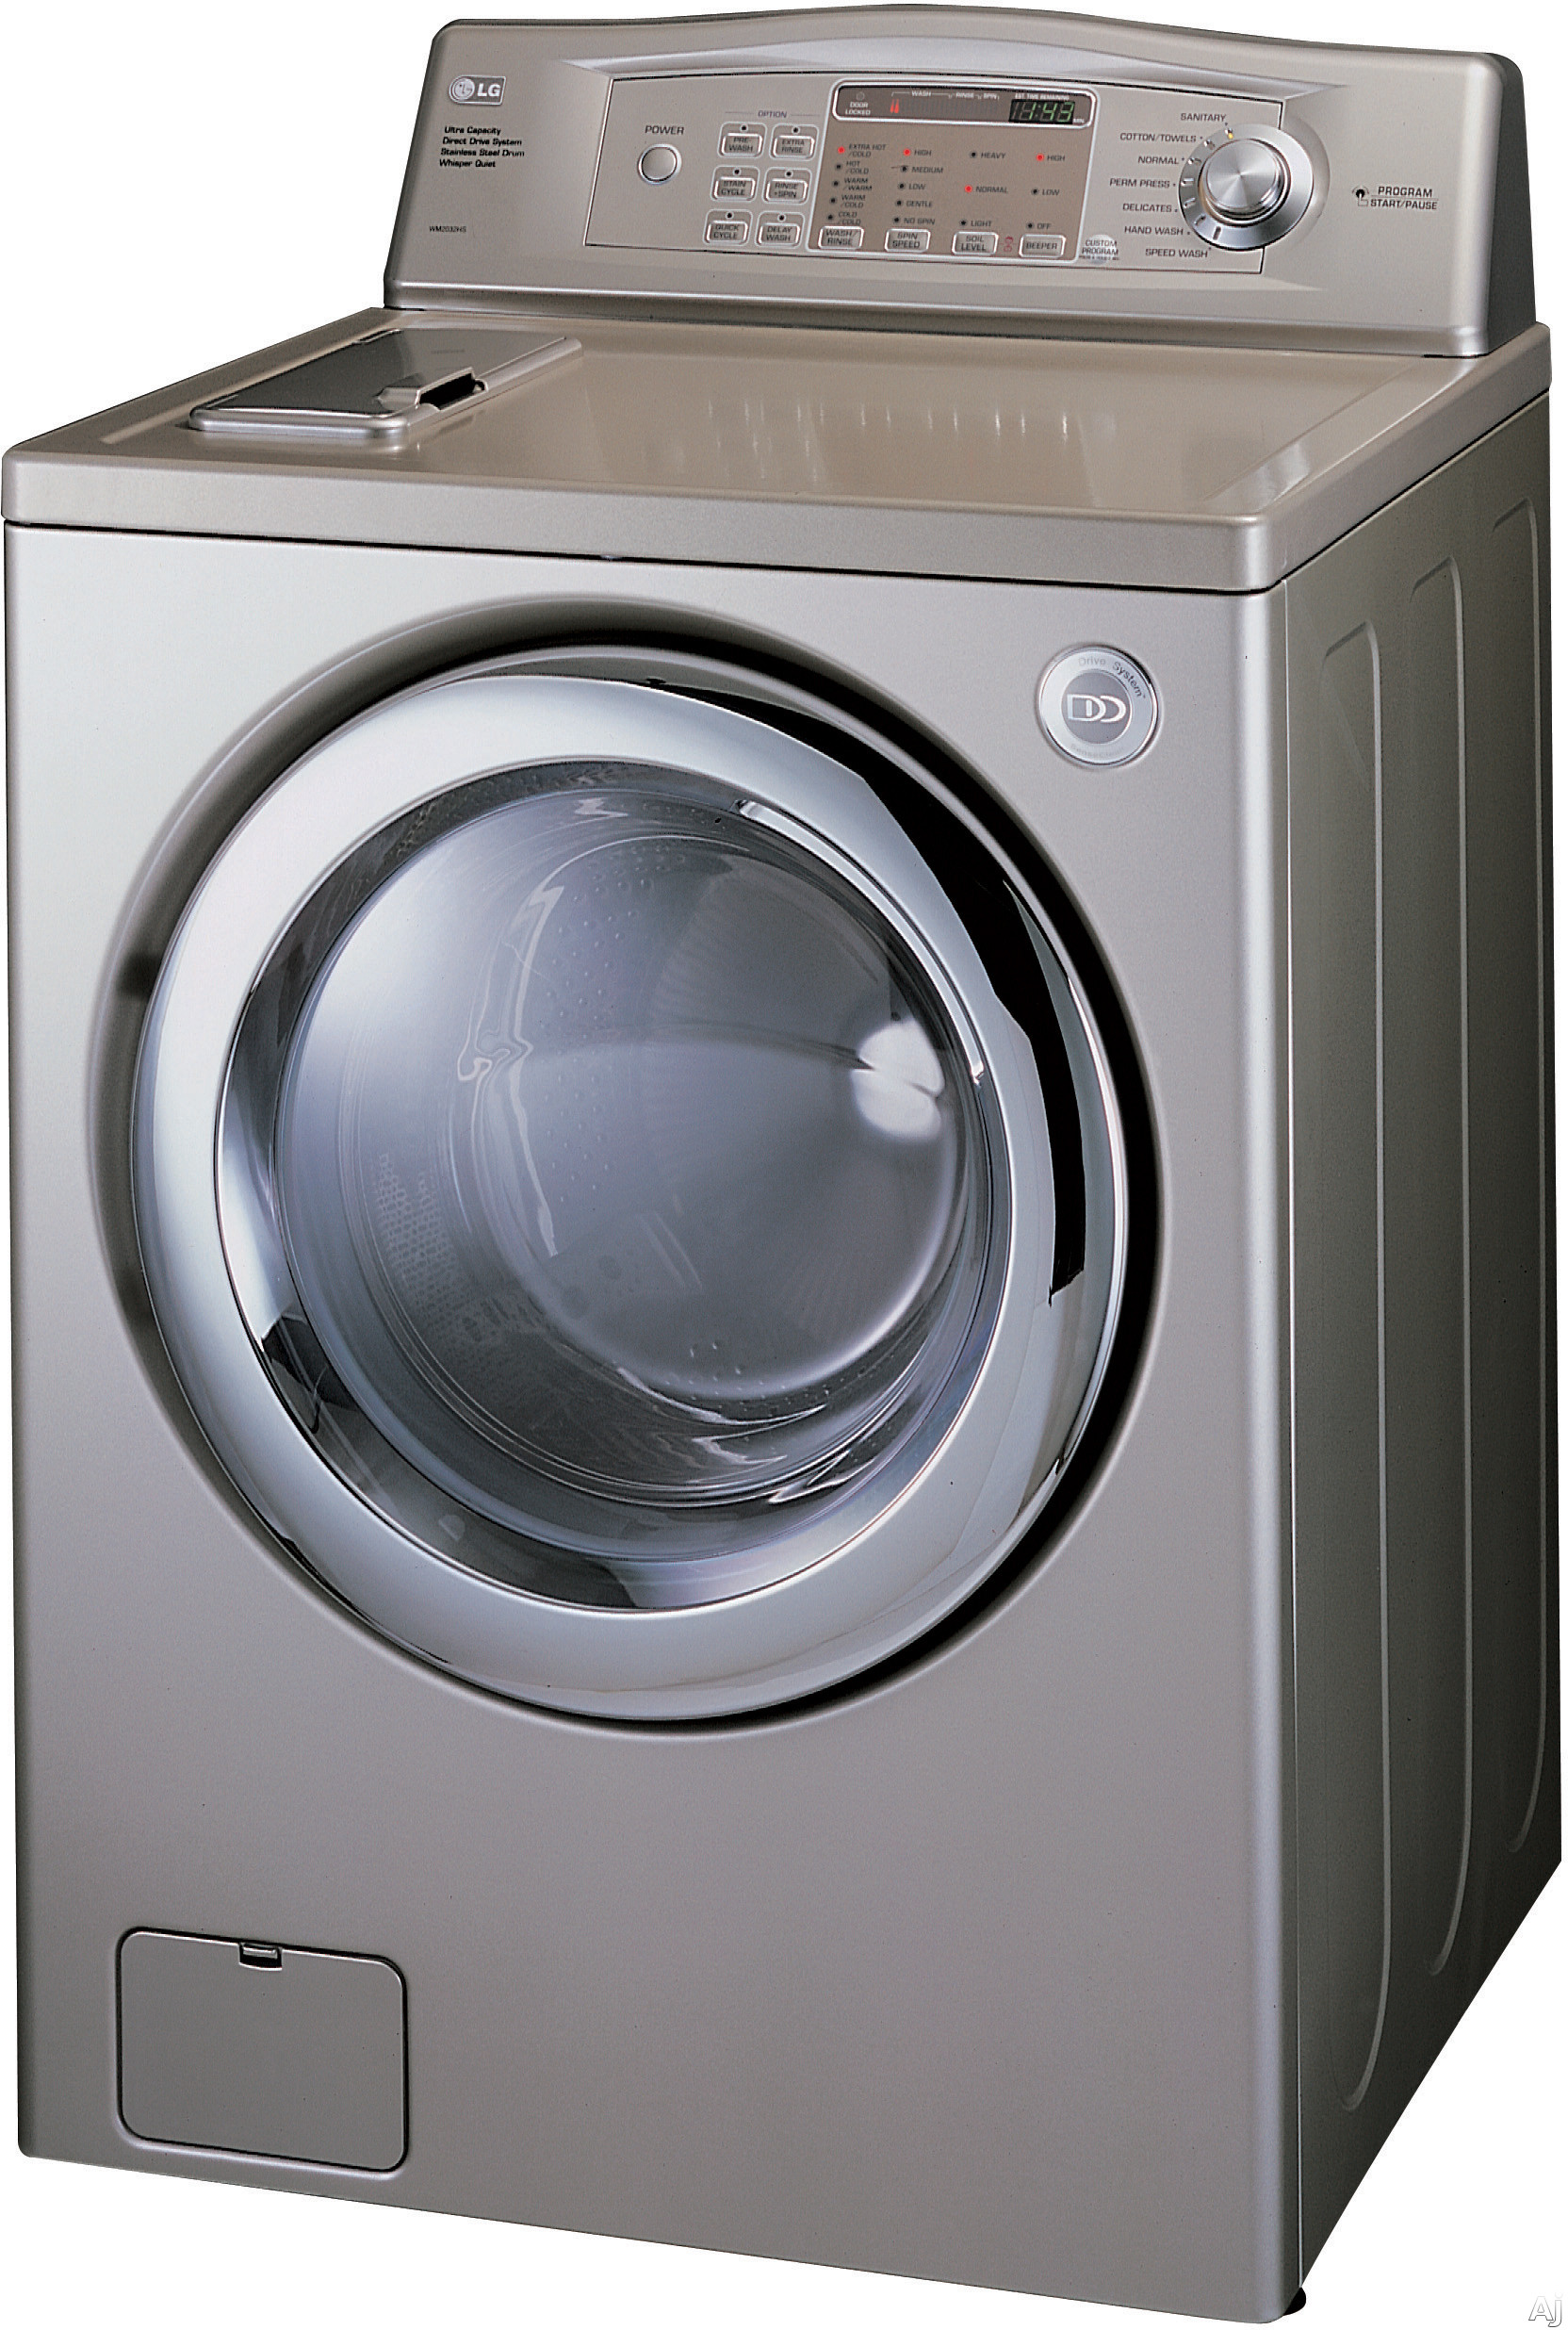 Spring Cleaning: How to Clean Your Washing Machine blog image 1